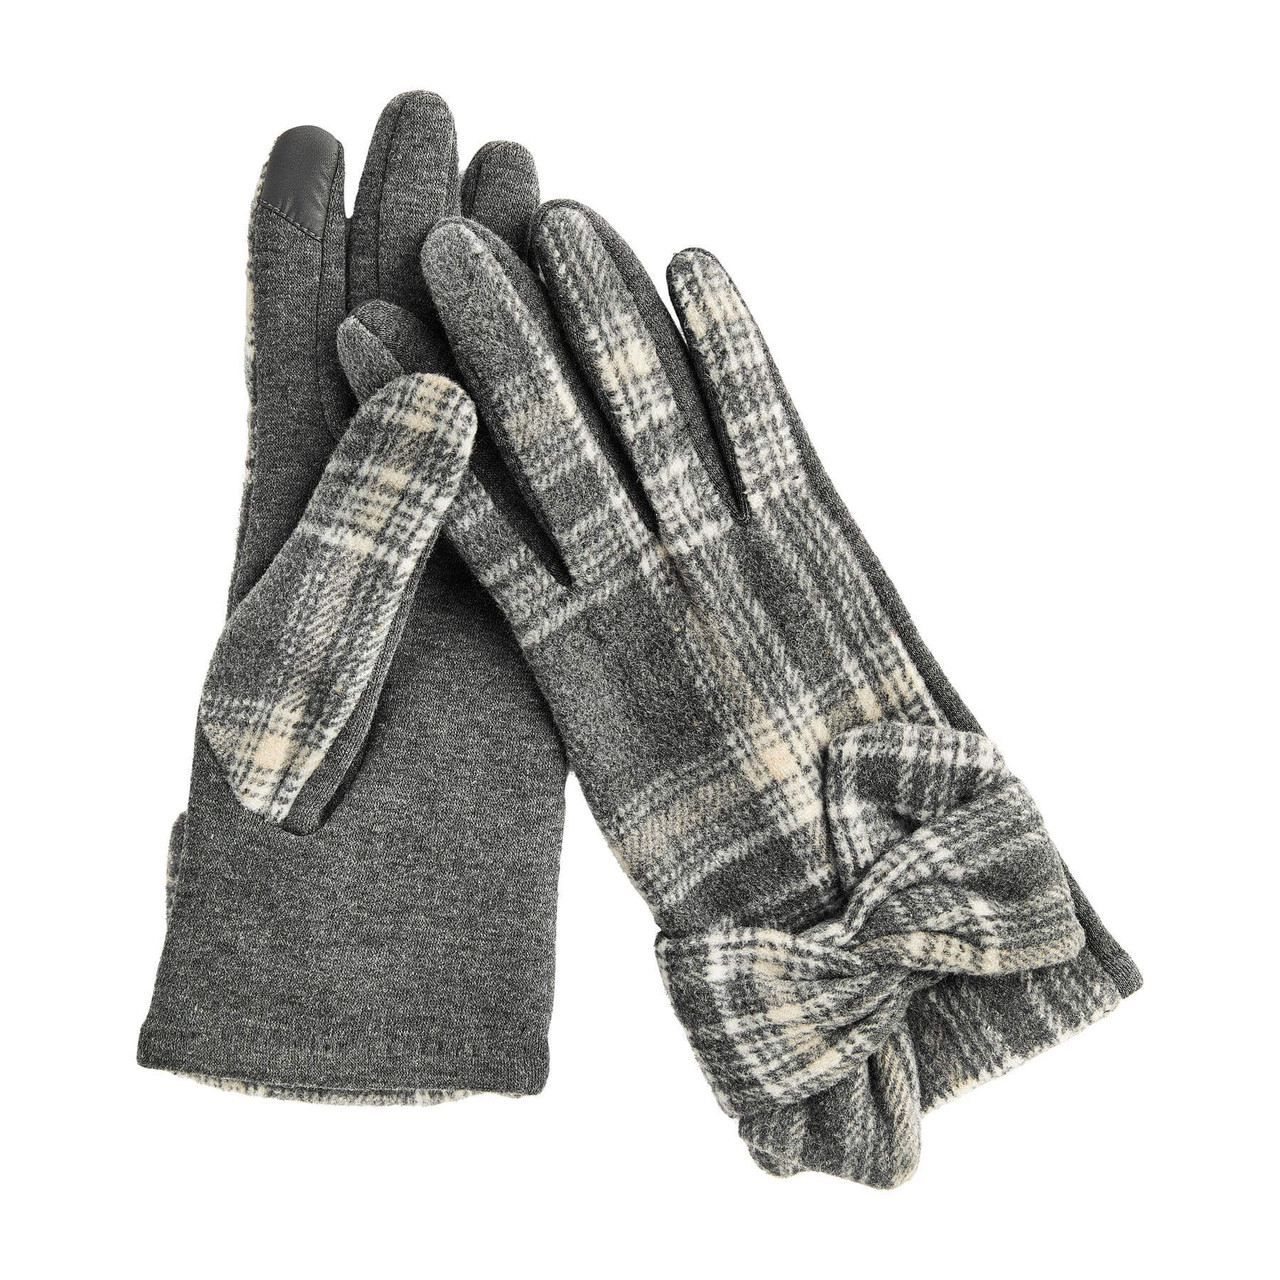 Classy and cute soft plaid gloves that feature a knotted detail at wrists, ponte knit palms, and touchscreen technology forefingers and thumbs